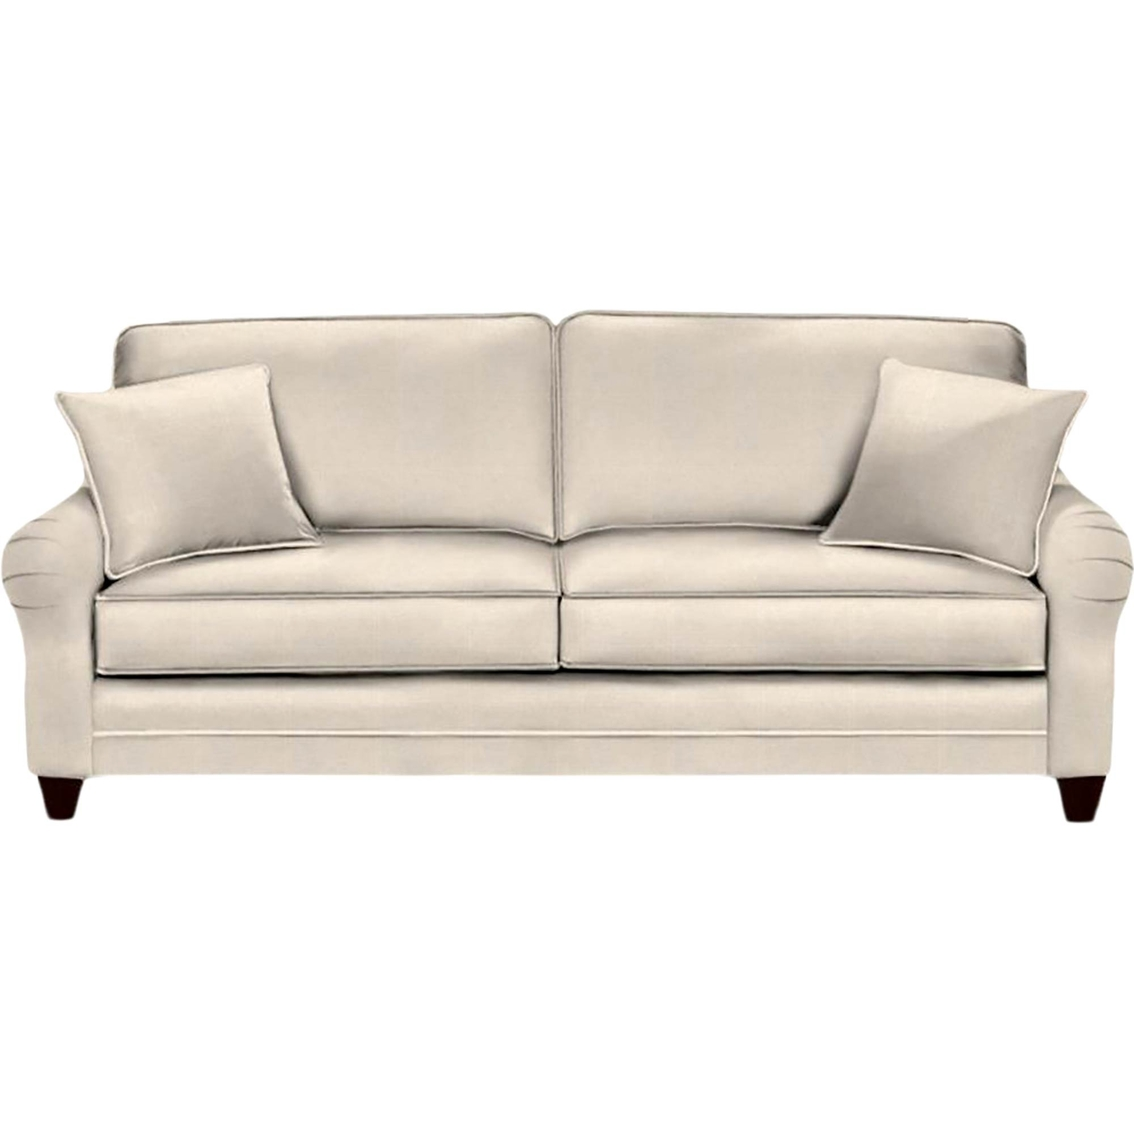 hgtv home design studio by bassett charles of london arm sofa